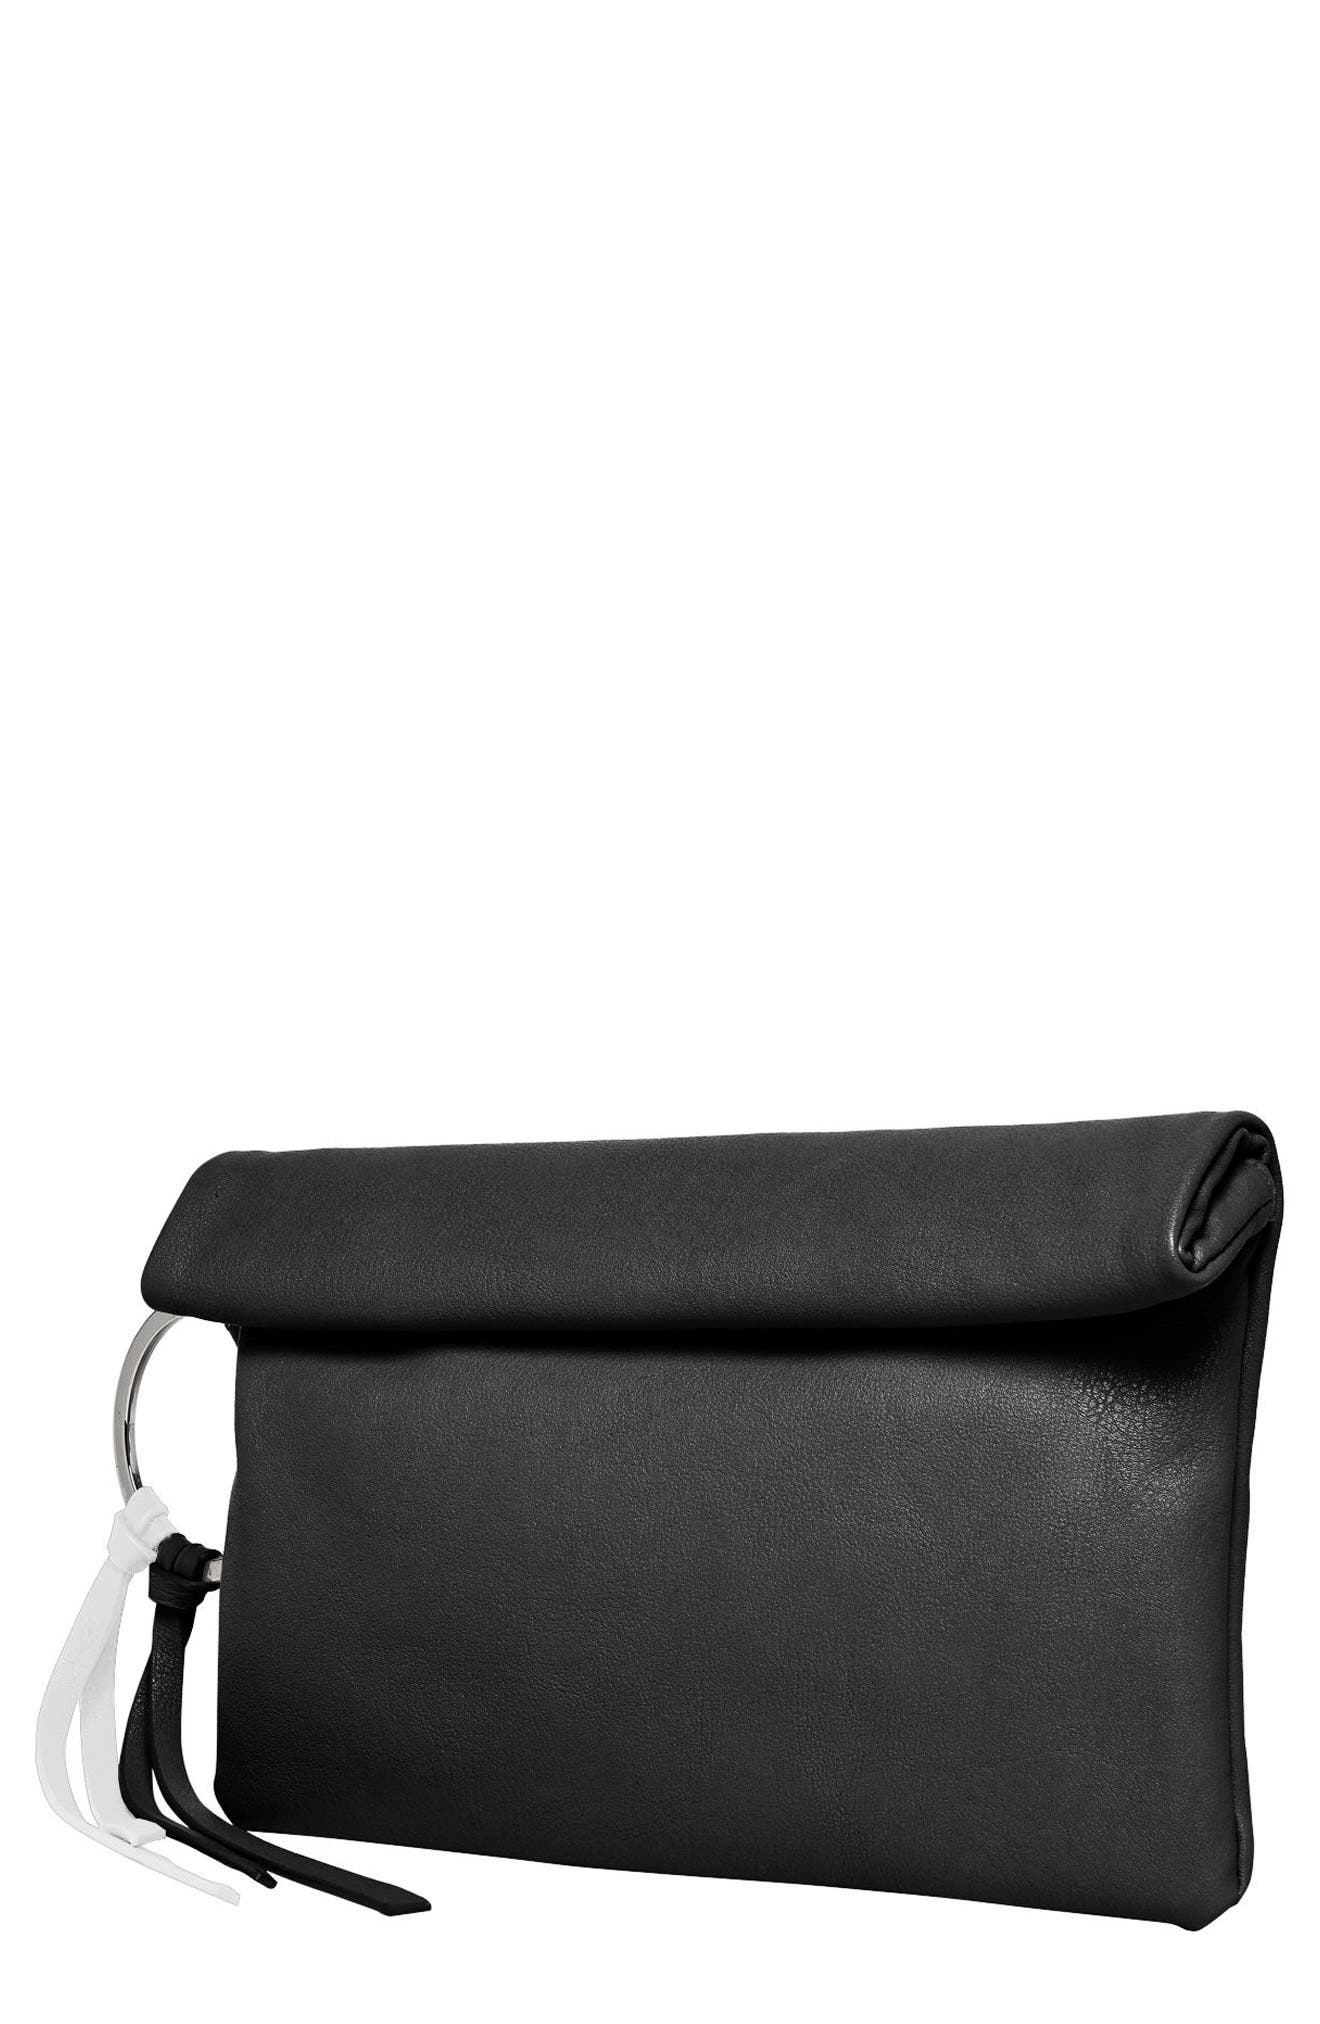 Lost Lover Vegan Leather Clutch,                             Main thumbnail 1, color,                             001